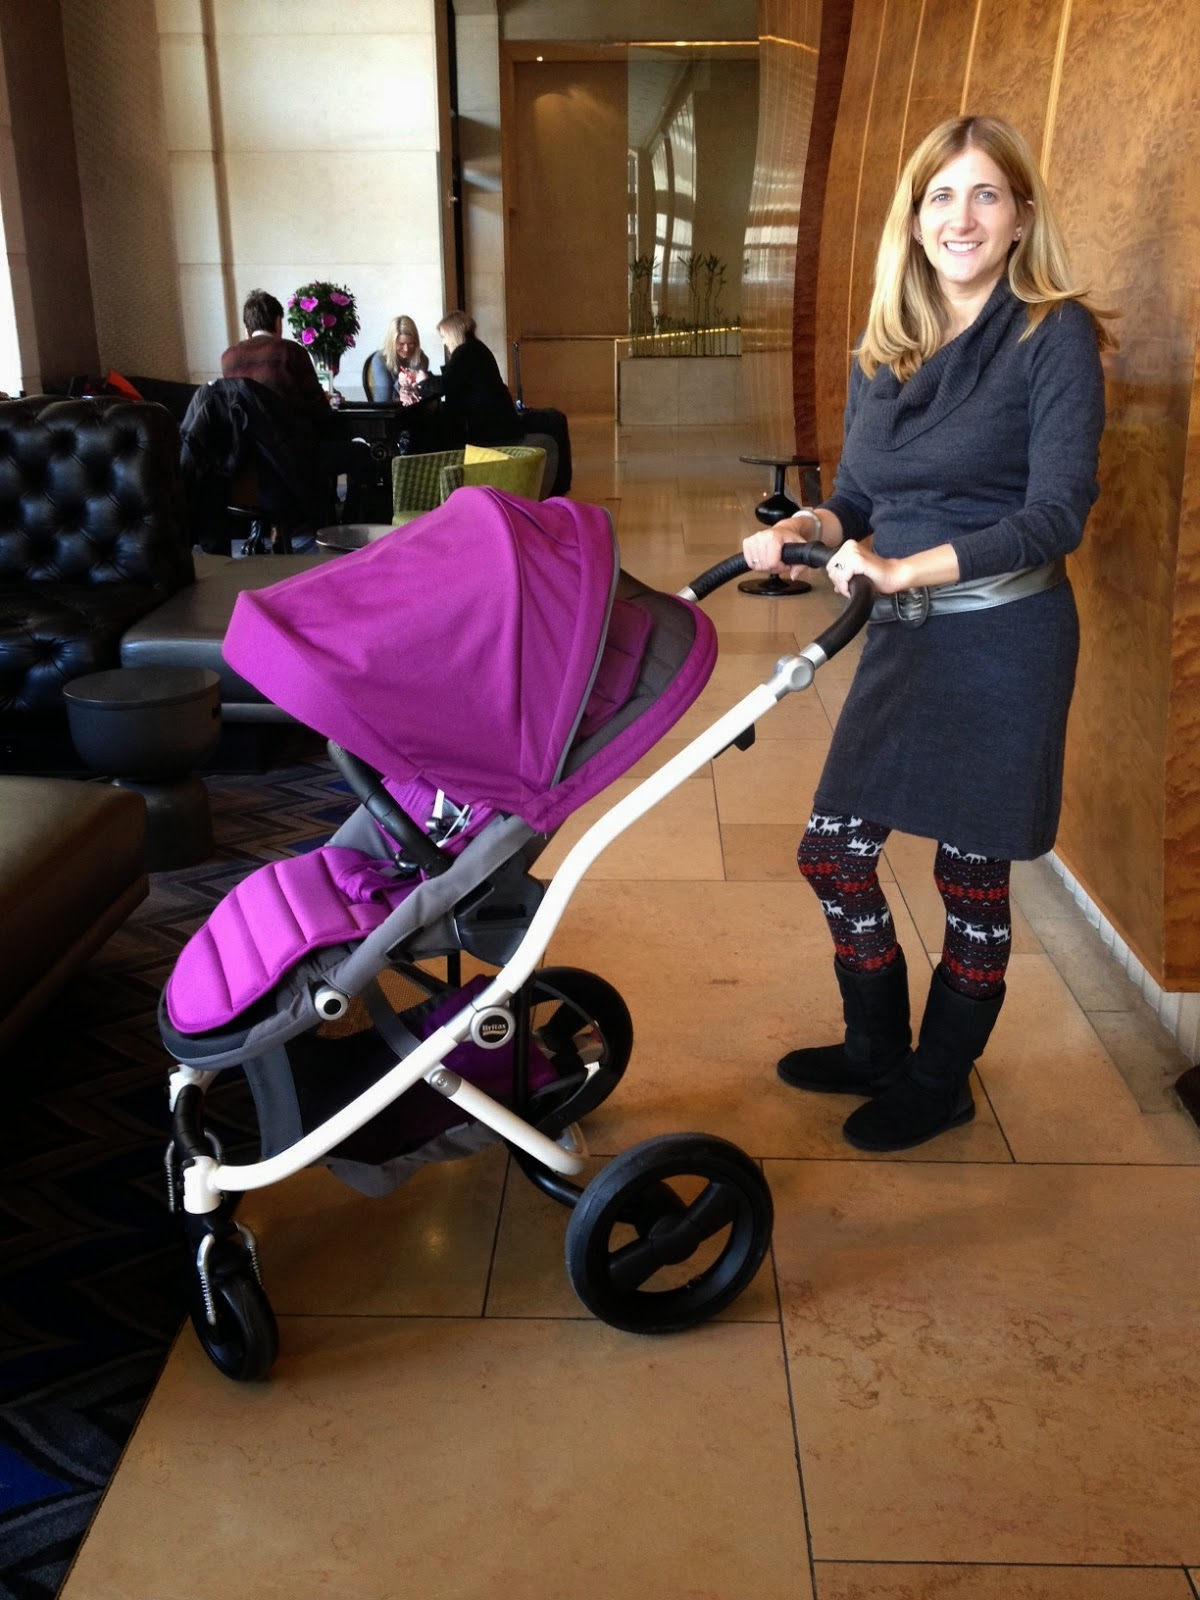 Earlier this Spring I had the chance to attend the launch event for the new Britax Affinity stroller. Itu0027s similar to my Britax B-Ready stroller ...  sc 1 st  When Tara Met Blog & When Tara Met Blog: New BRITAX Affinity Stroller Review u0026 Giveaway